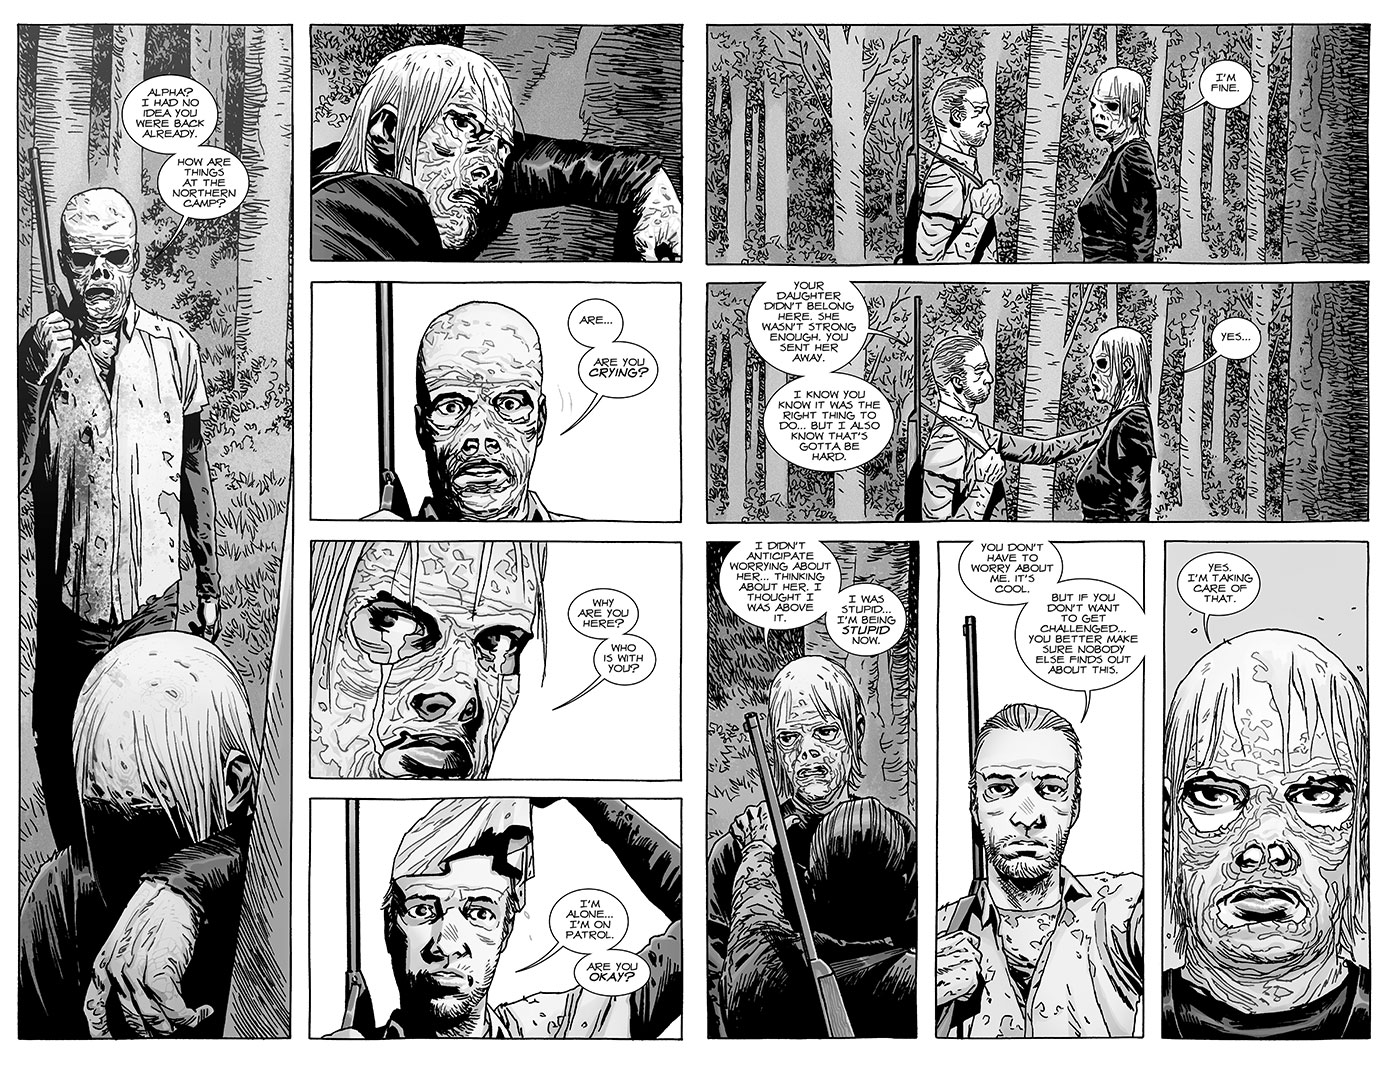 The Whisperer's Leader, Alpha from issue #148 of TWD